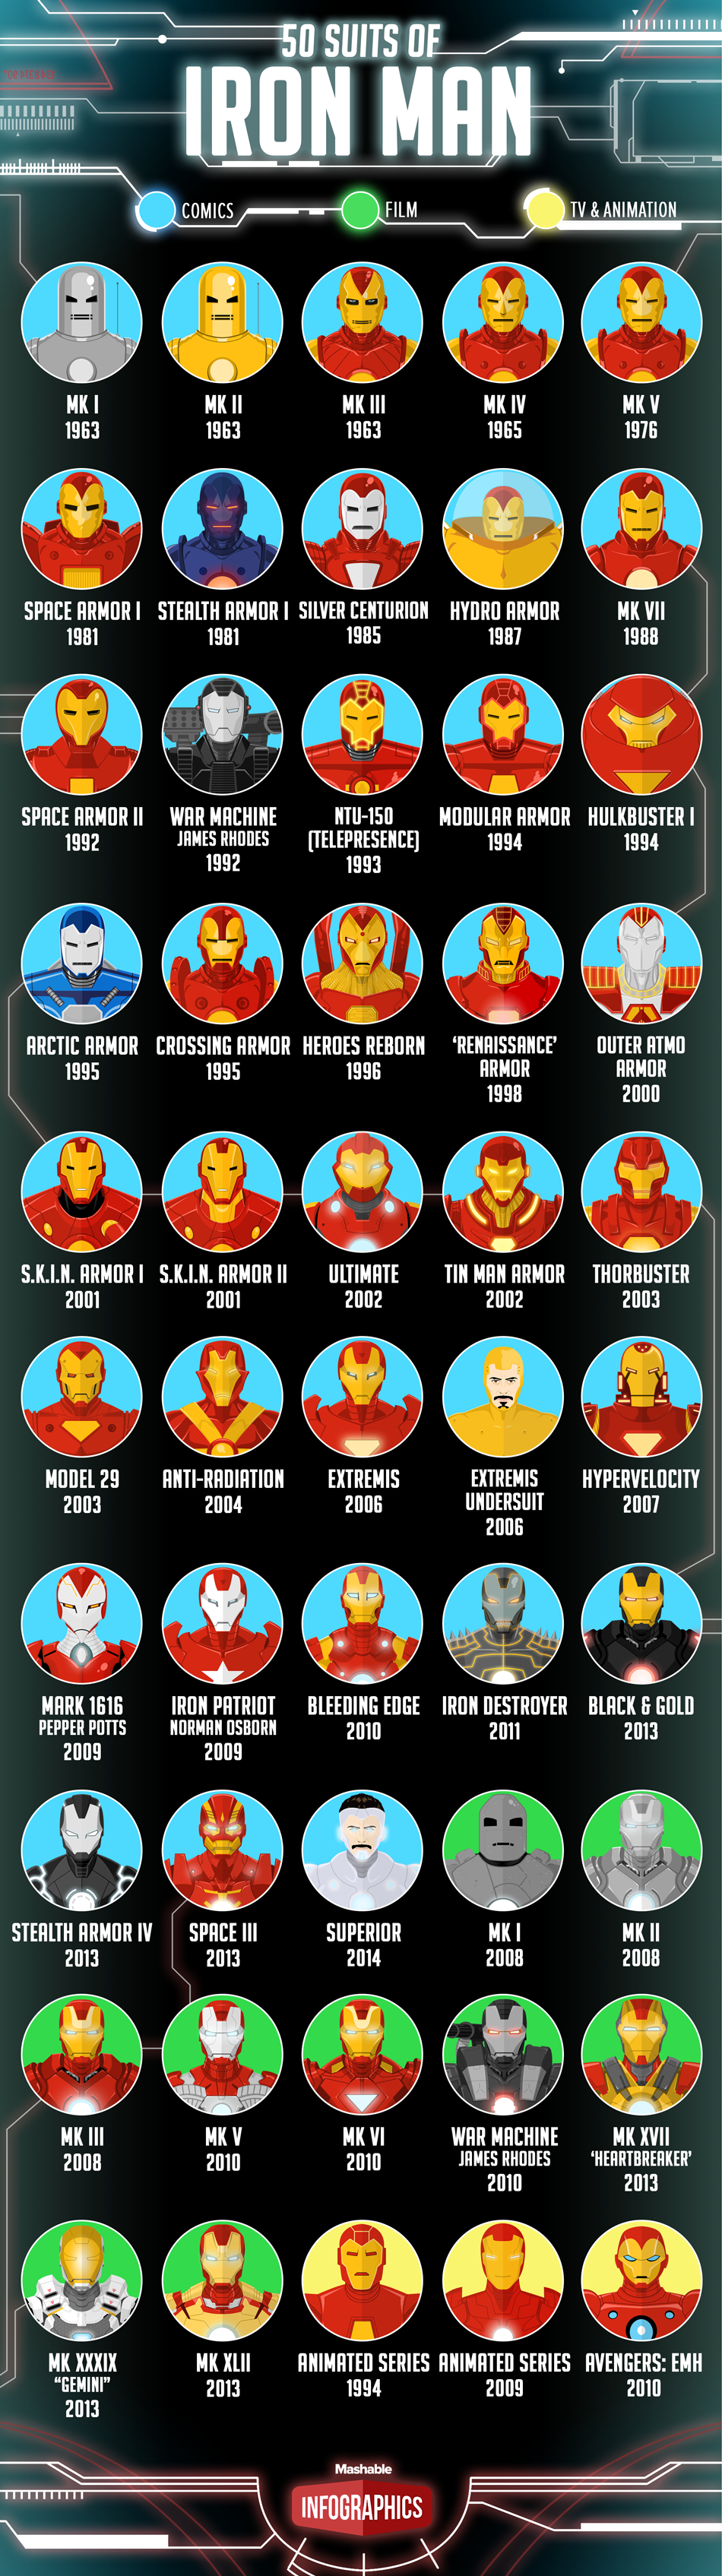 50 Iron Man suits of the last 50 years